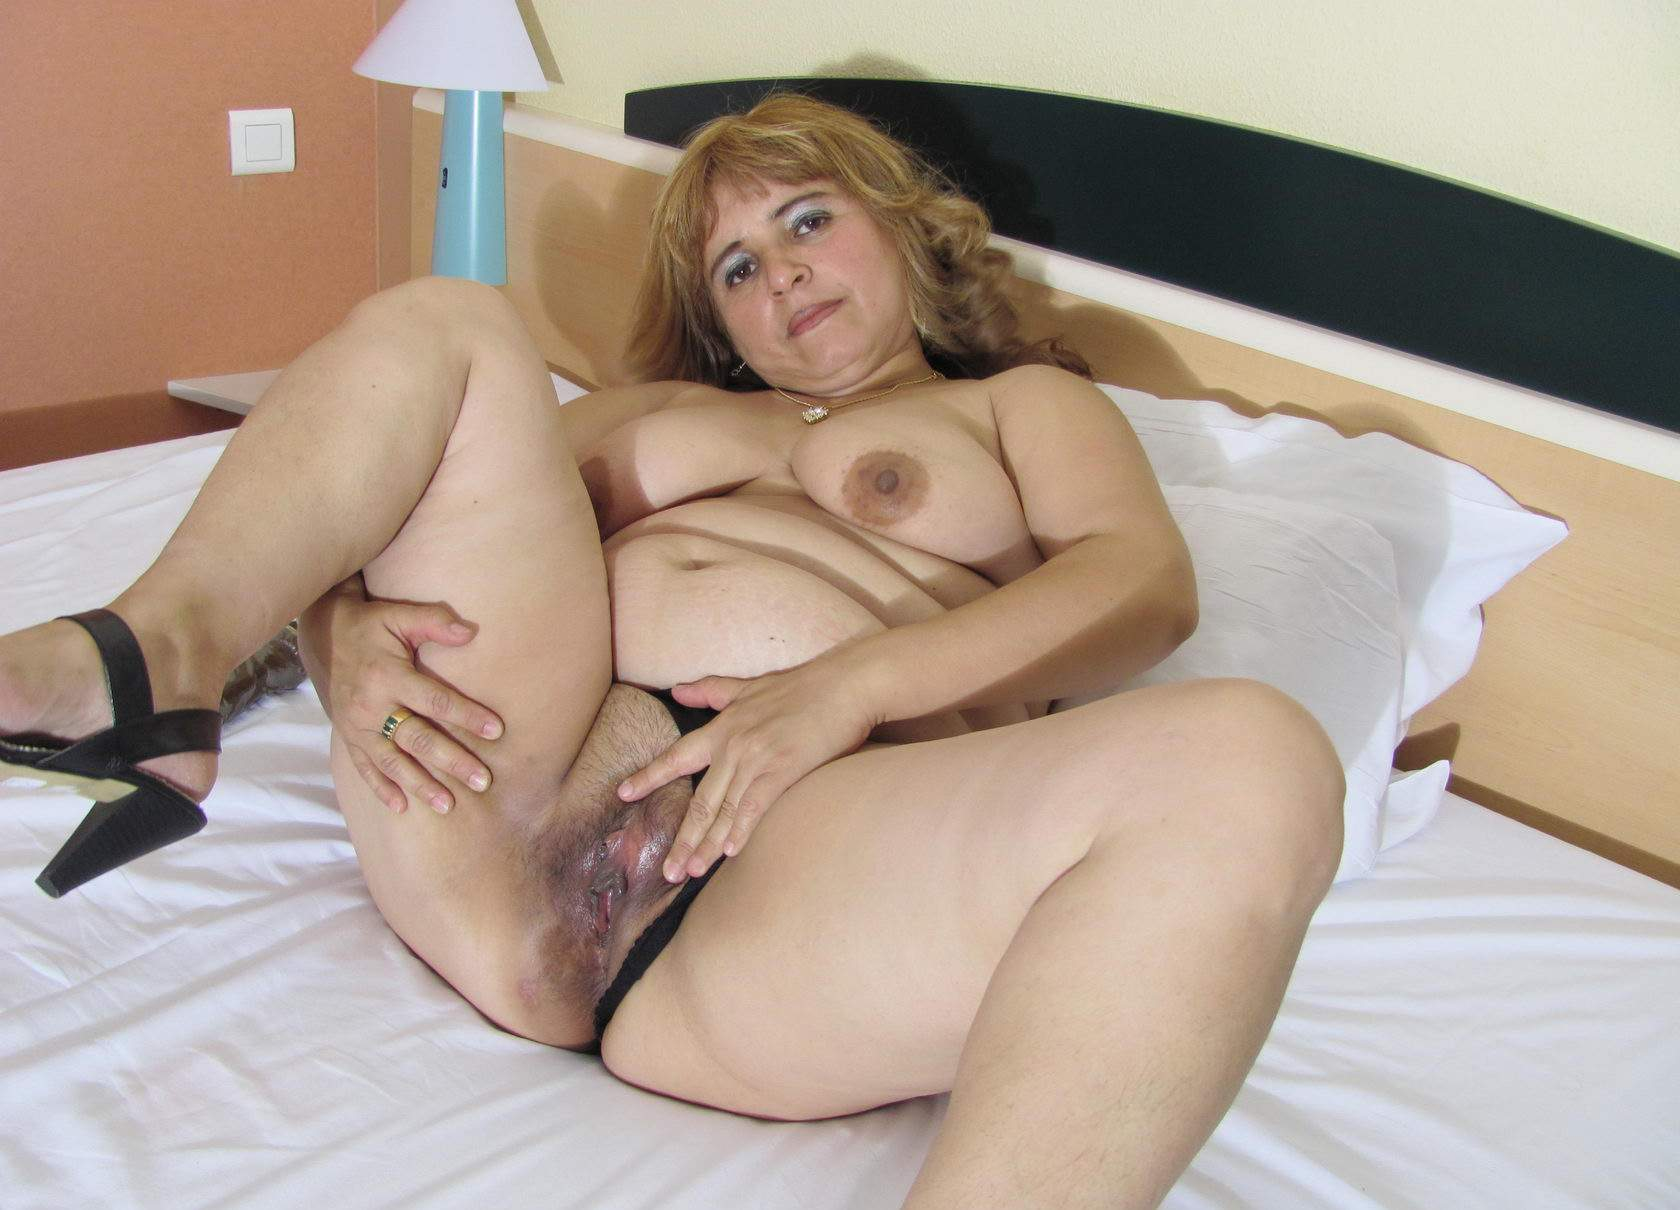 Las putas mas sexis videos de chicas escort